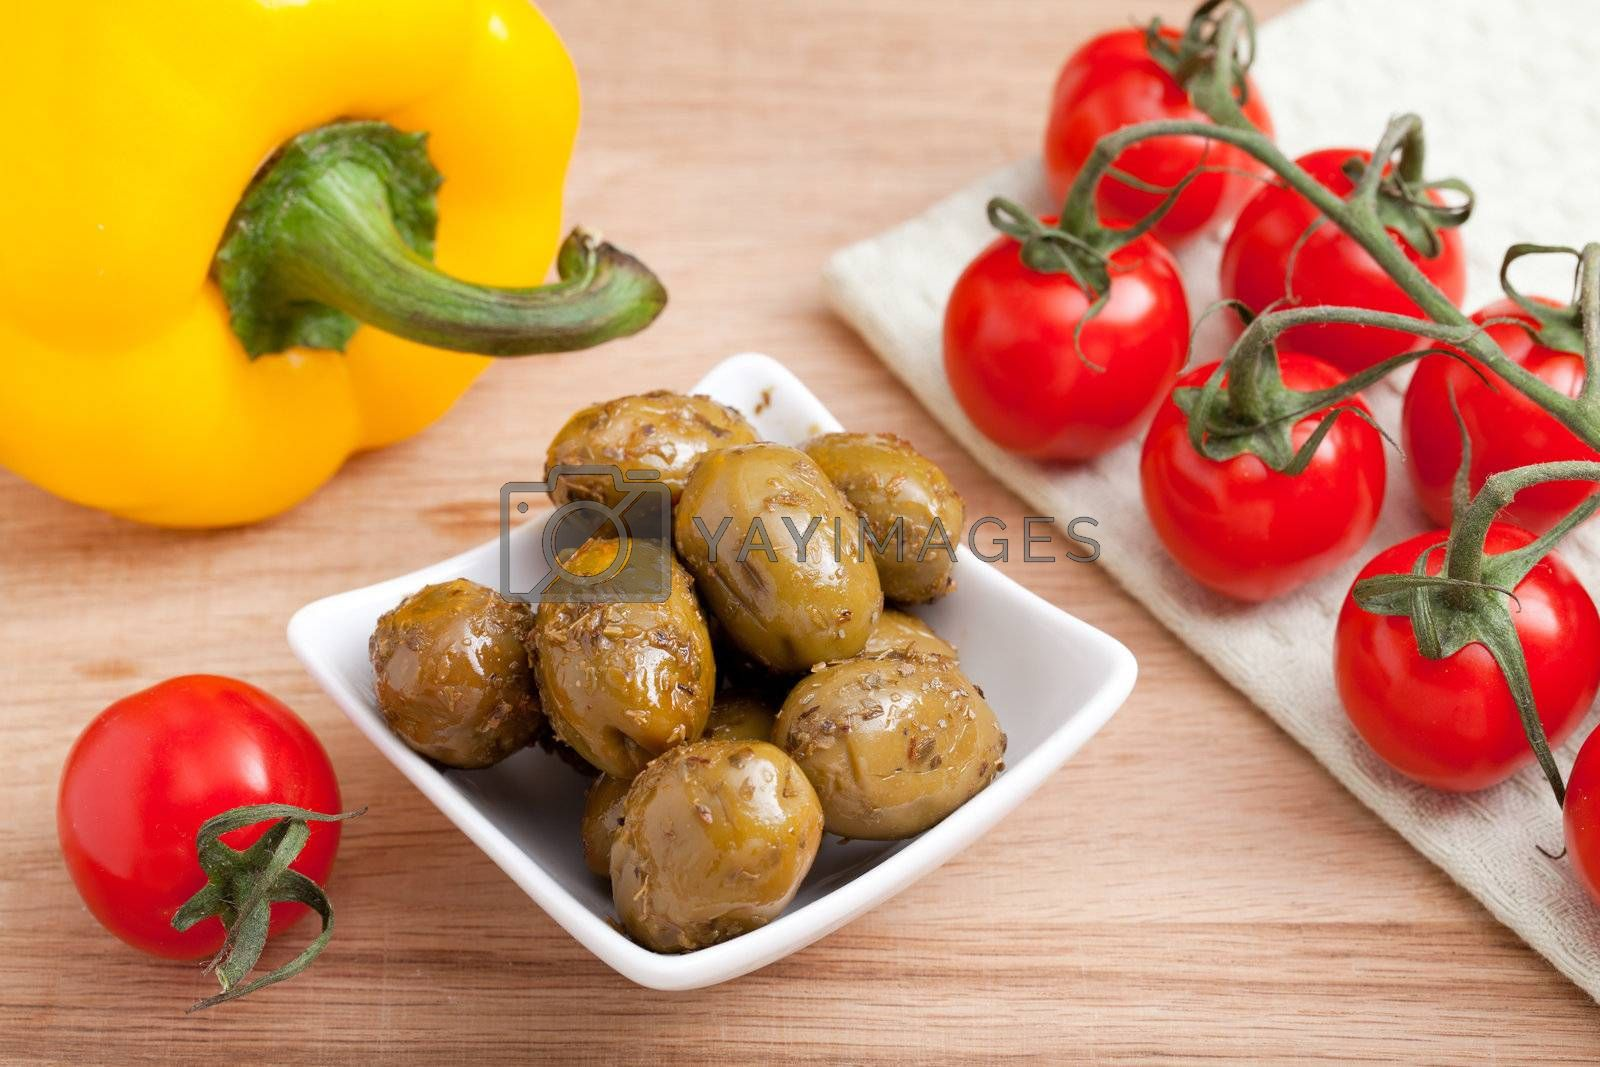 Royalty free image of Cherry tomatoes bunch, olives, yellow paprika, on wooden board by SergeyAK